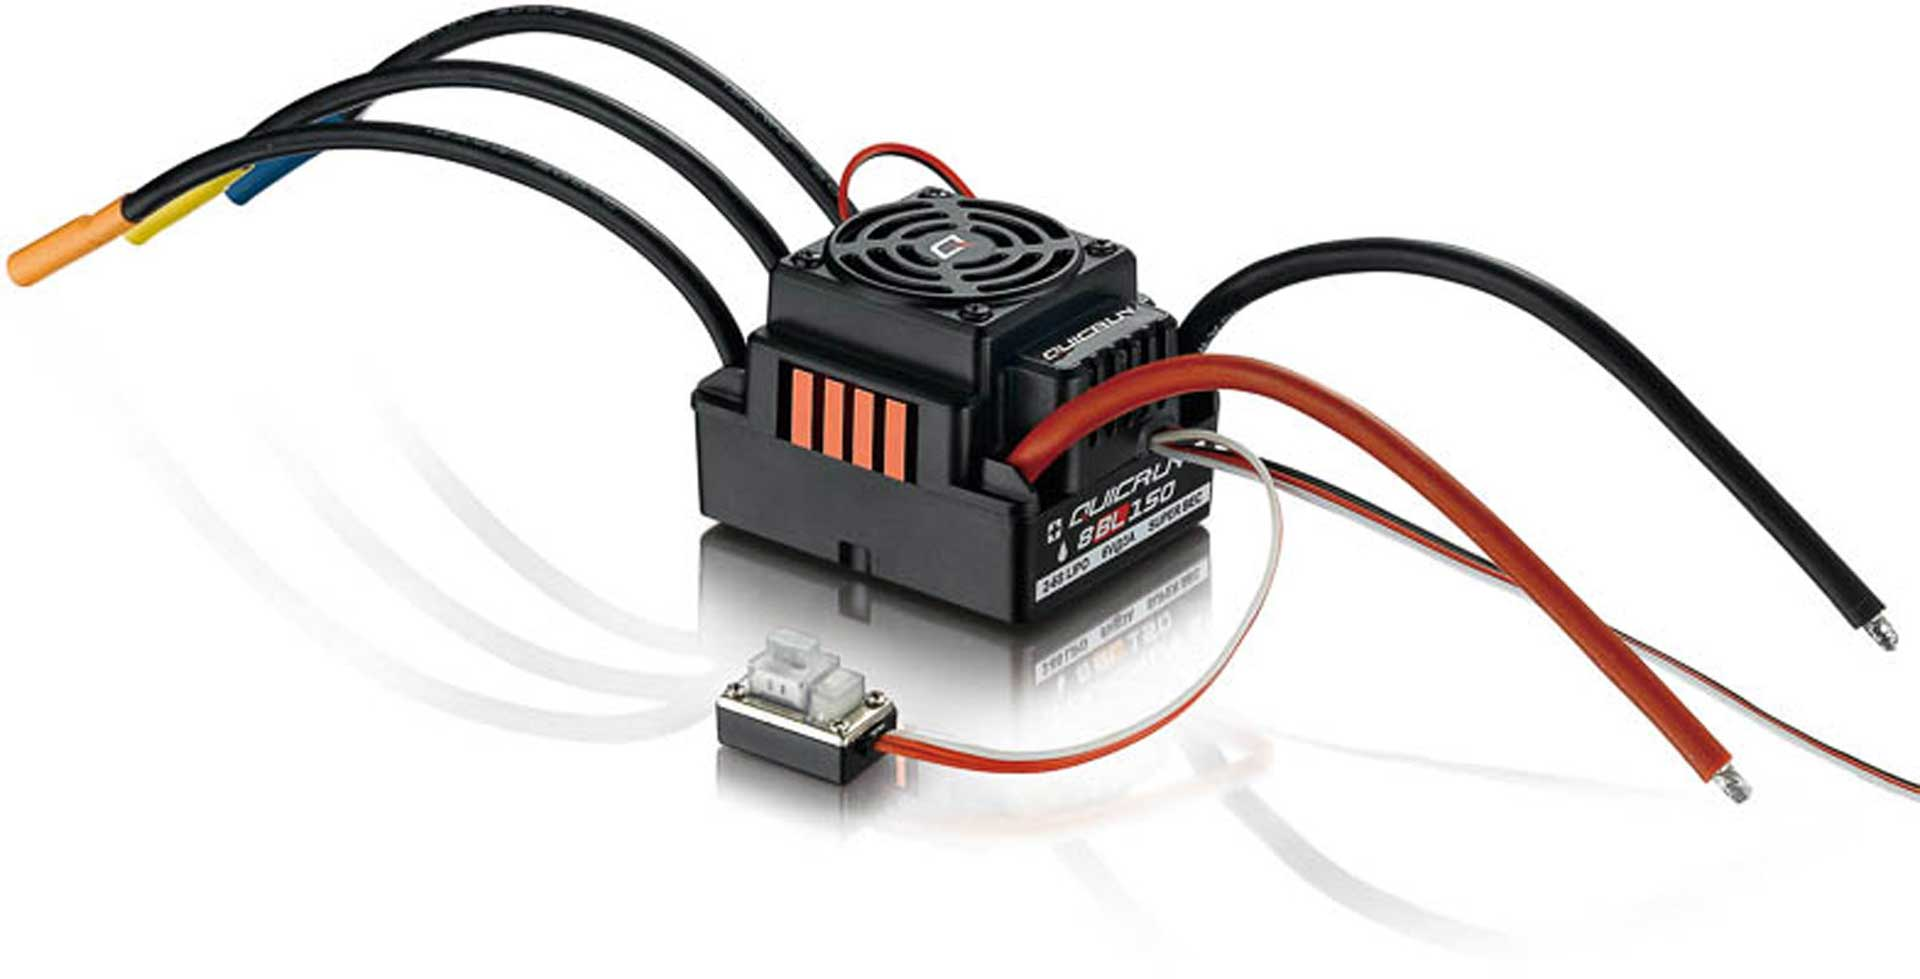 HOBBYWING QuicRun WP8BL150 Brushless Controller 150A for 1/8 Models